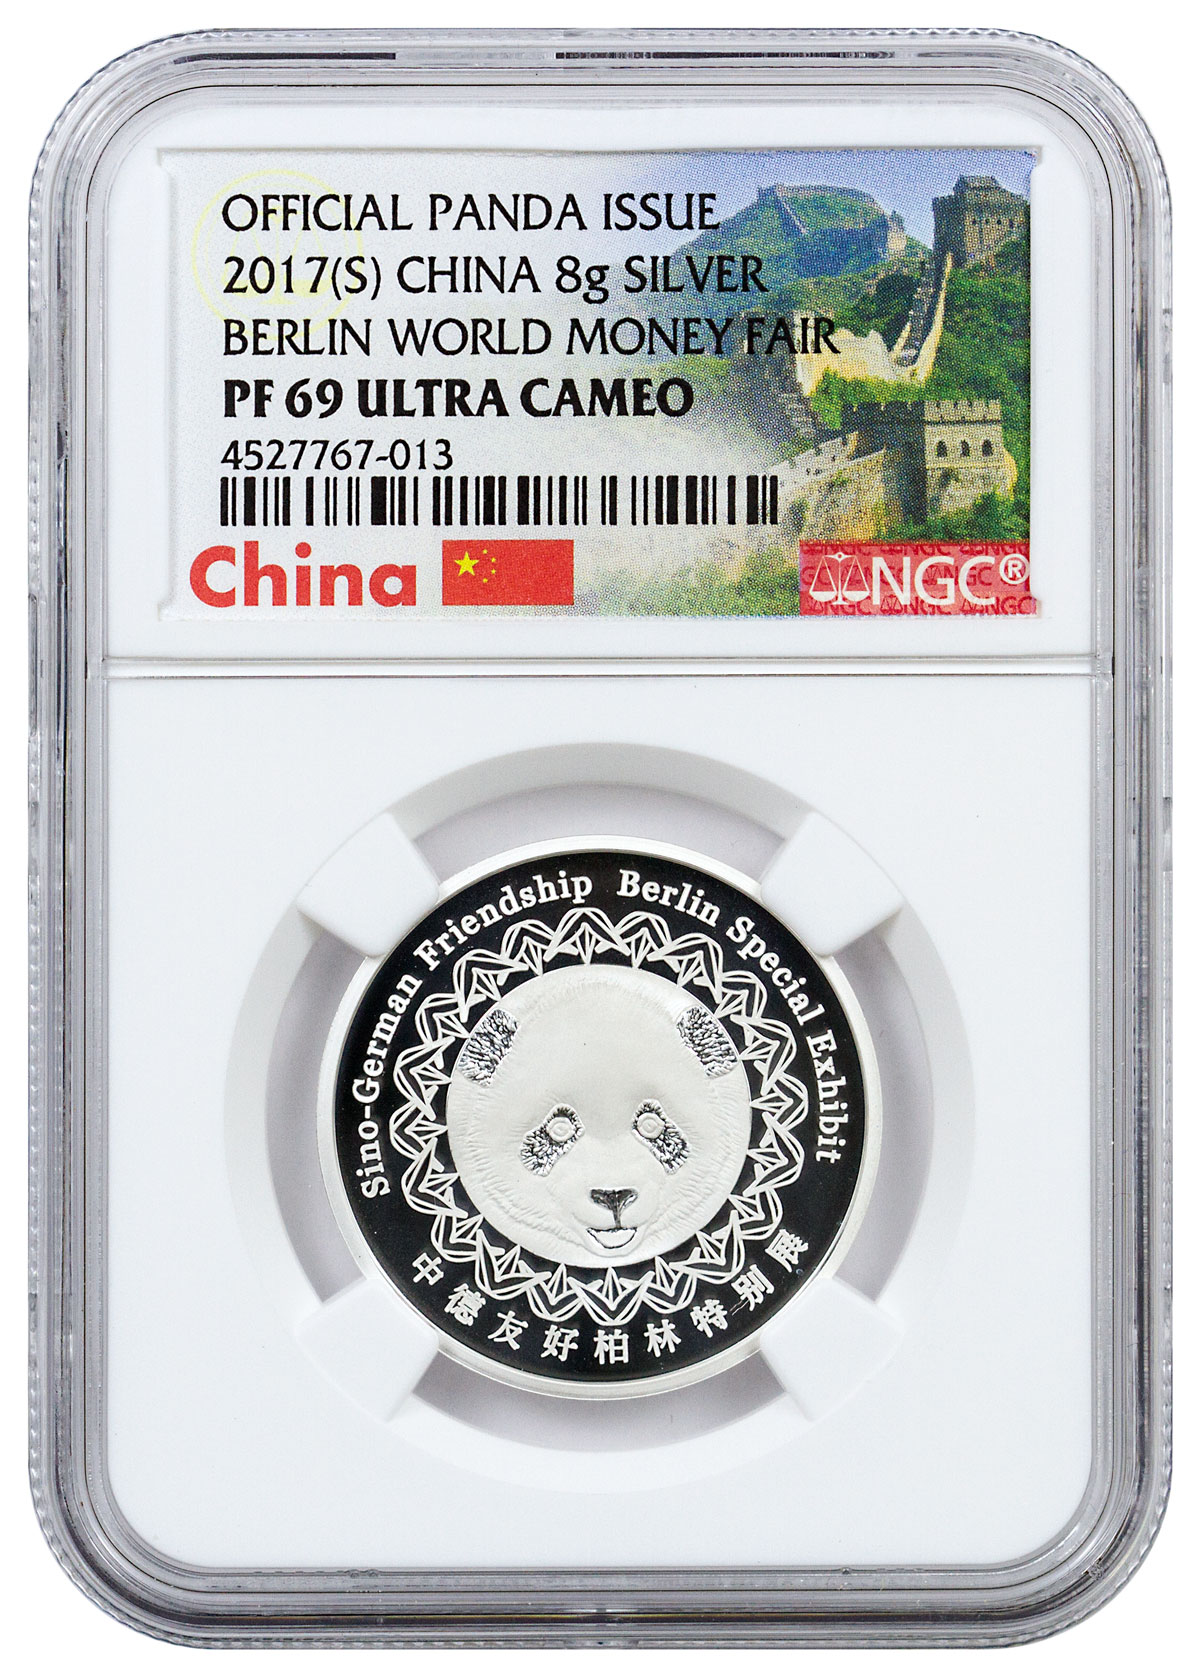 2017 China Berlin World Money Fair Silver Panda 8 g Silver Proof Medal NGC PF69 UC (Exclusive Great Wall Label)